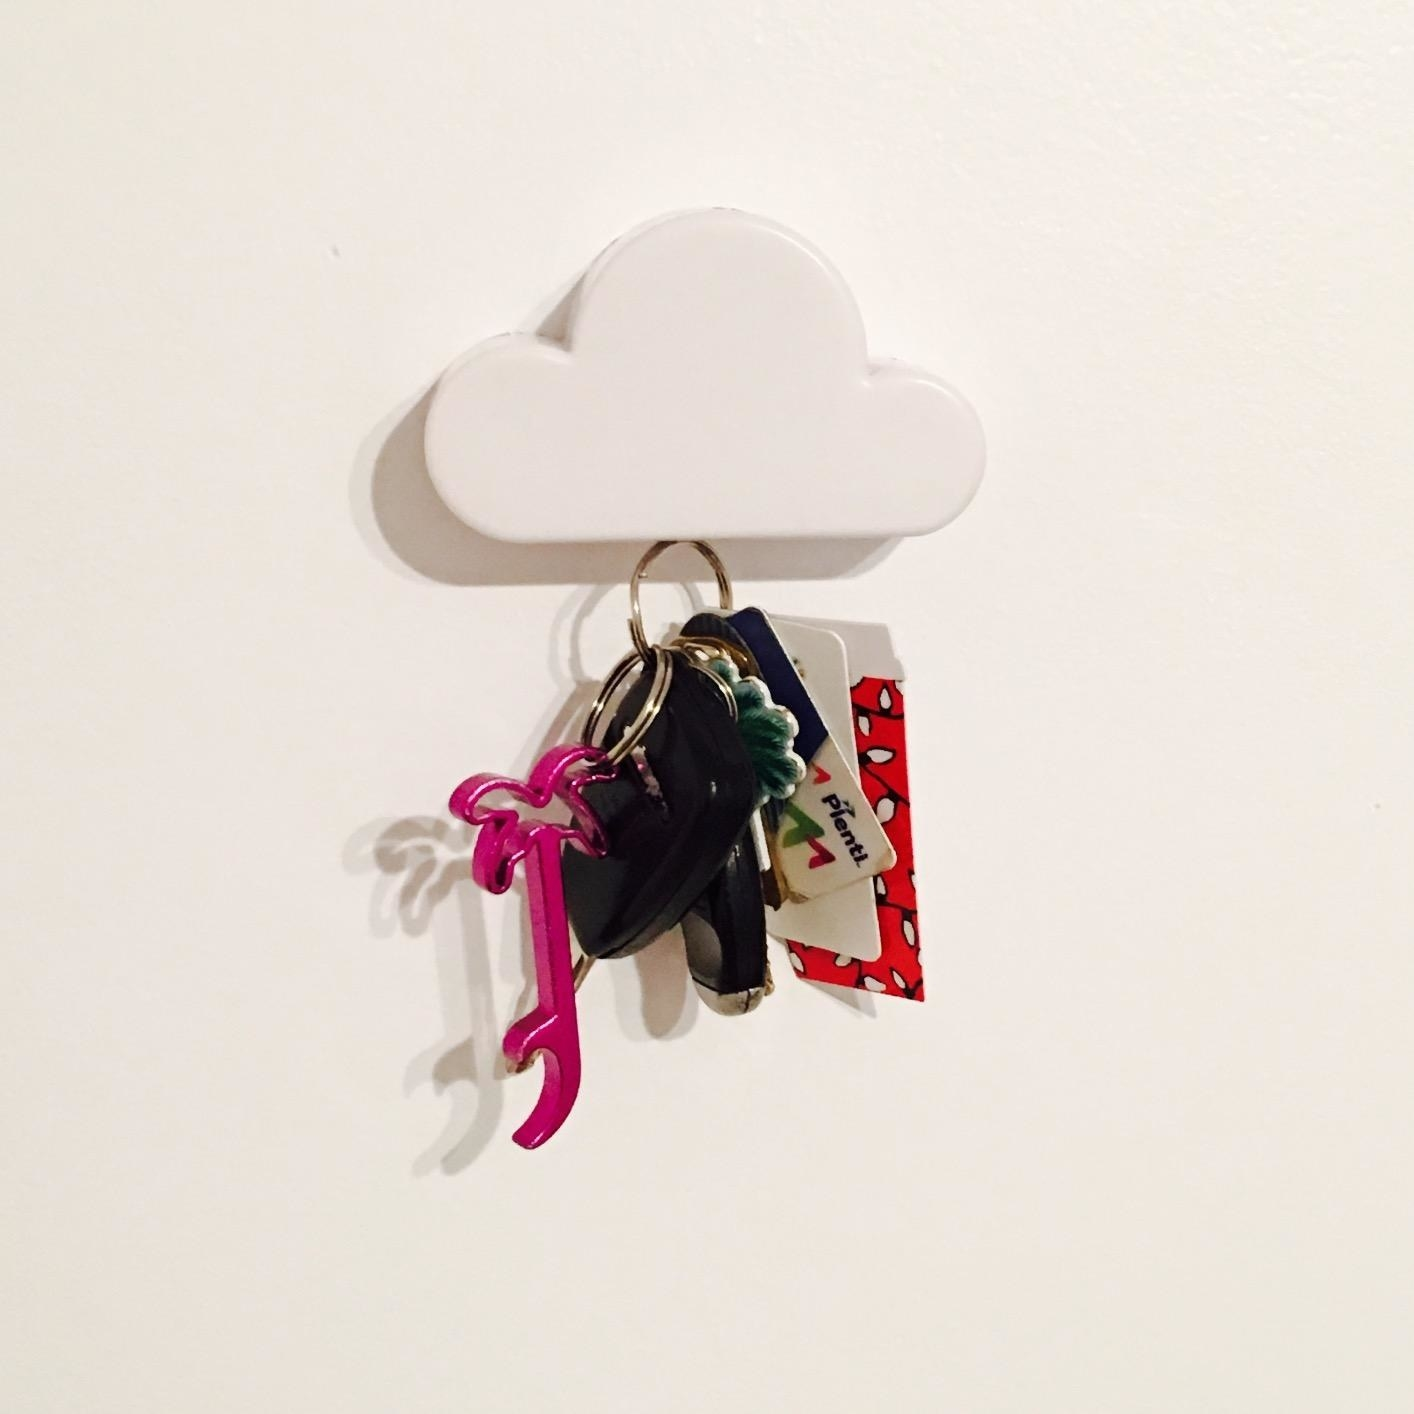 Reviewer pic of the white cloud key holder attached to the wall with a big set of keys hanging from it.